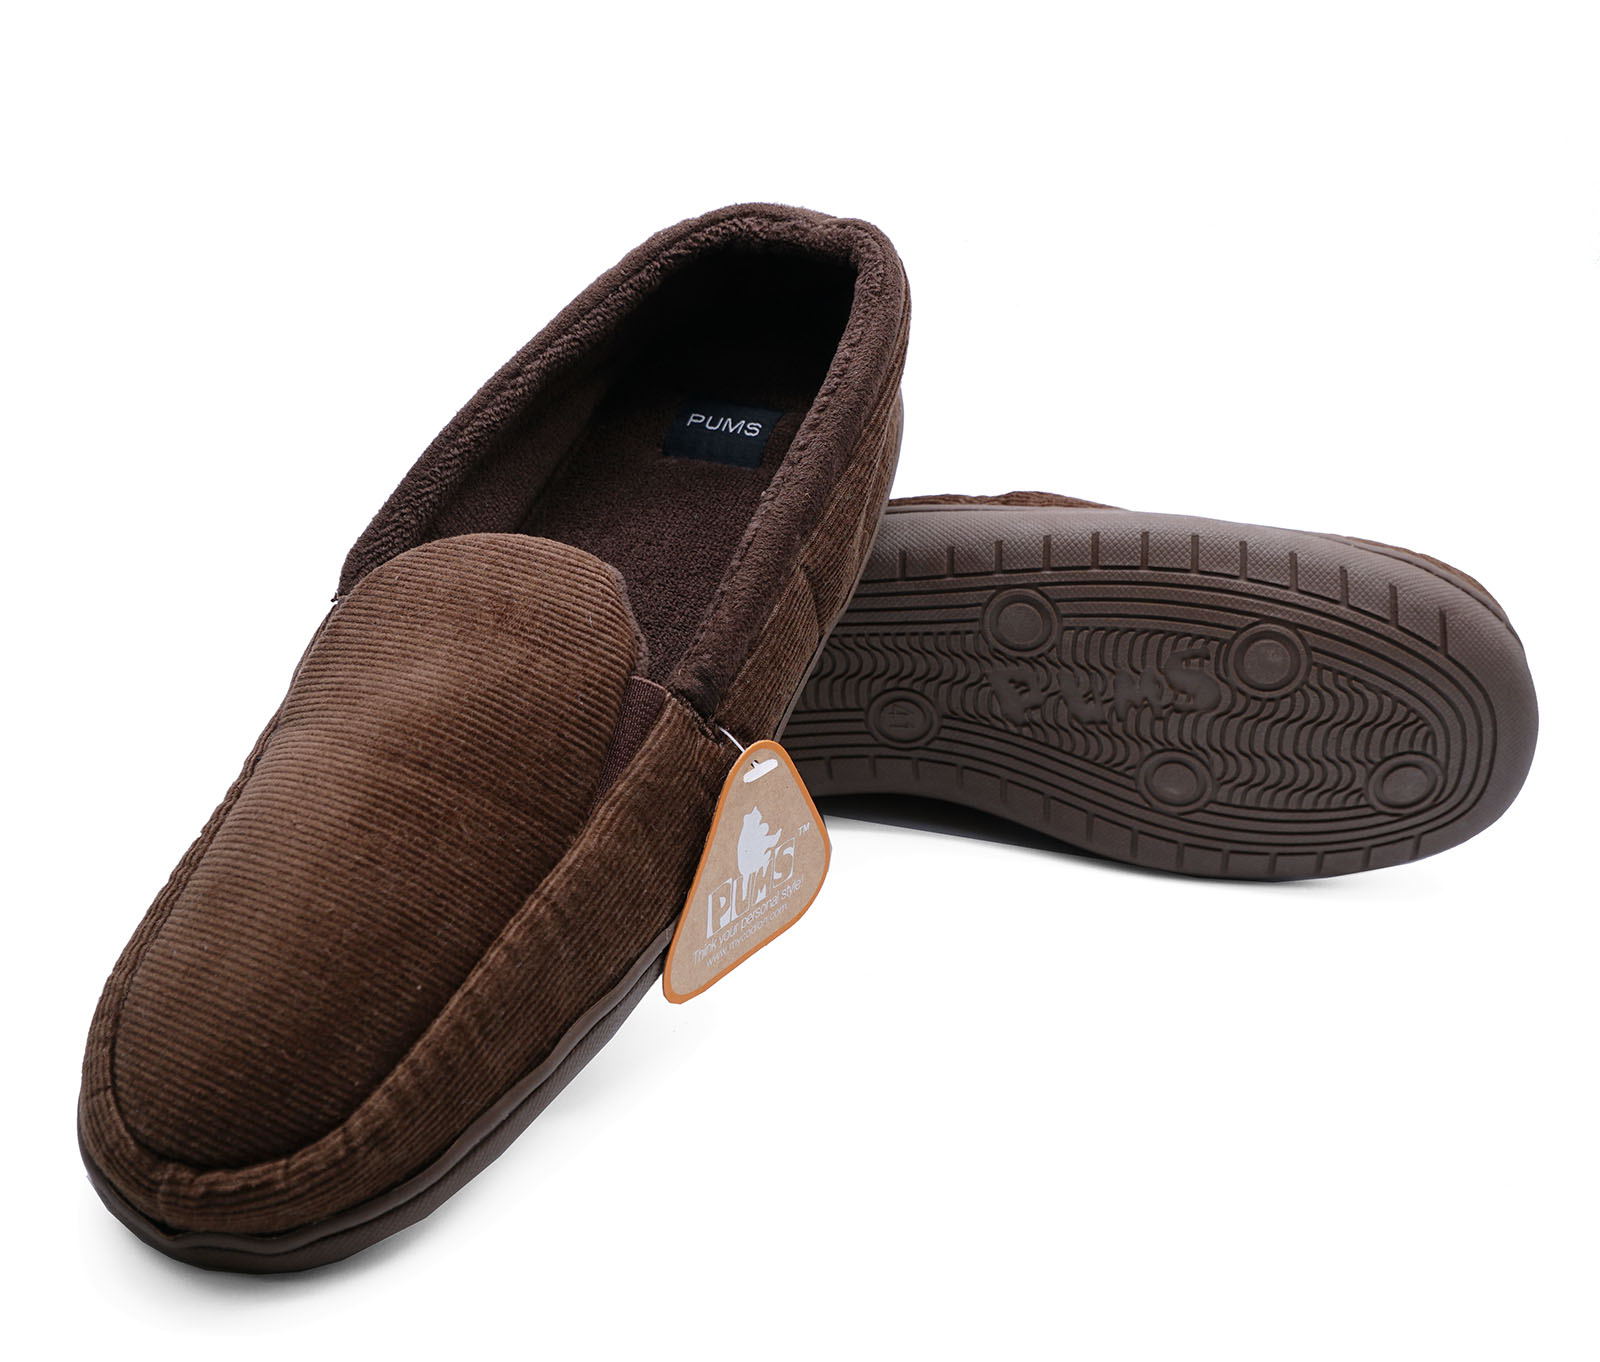 MENS-BROWN-SLIP-ON-INDOOR-FLAT-WARM-COMFY-COOL-SLIPPERS-HOUSE-SHOES-SIZES-7-11 thumbnail 6